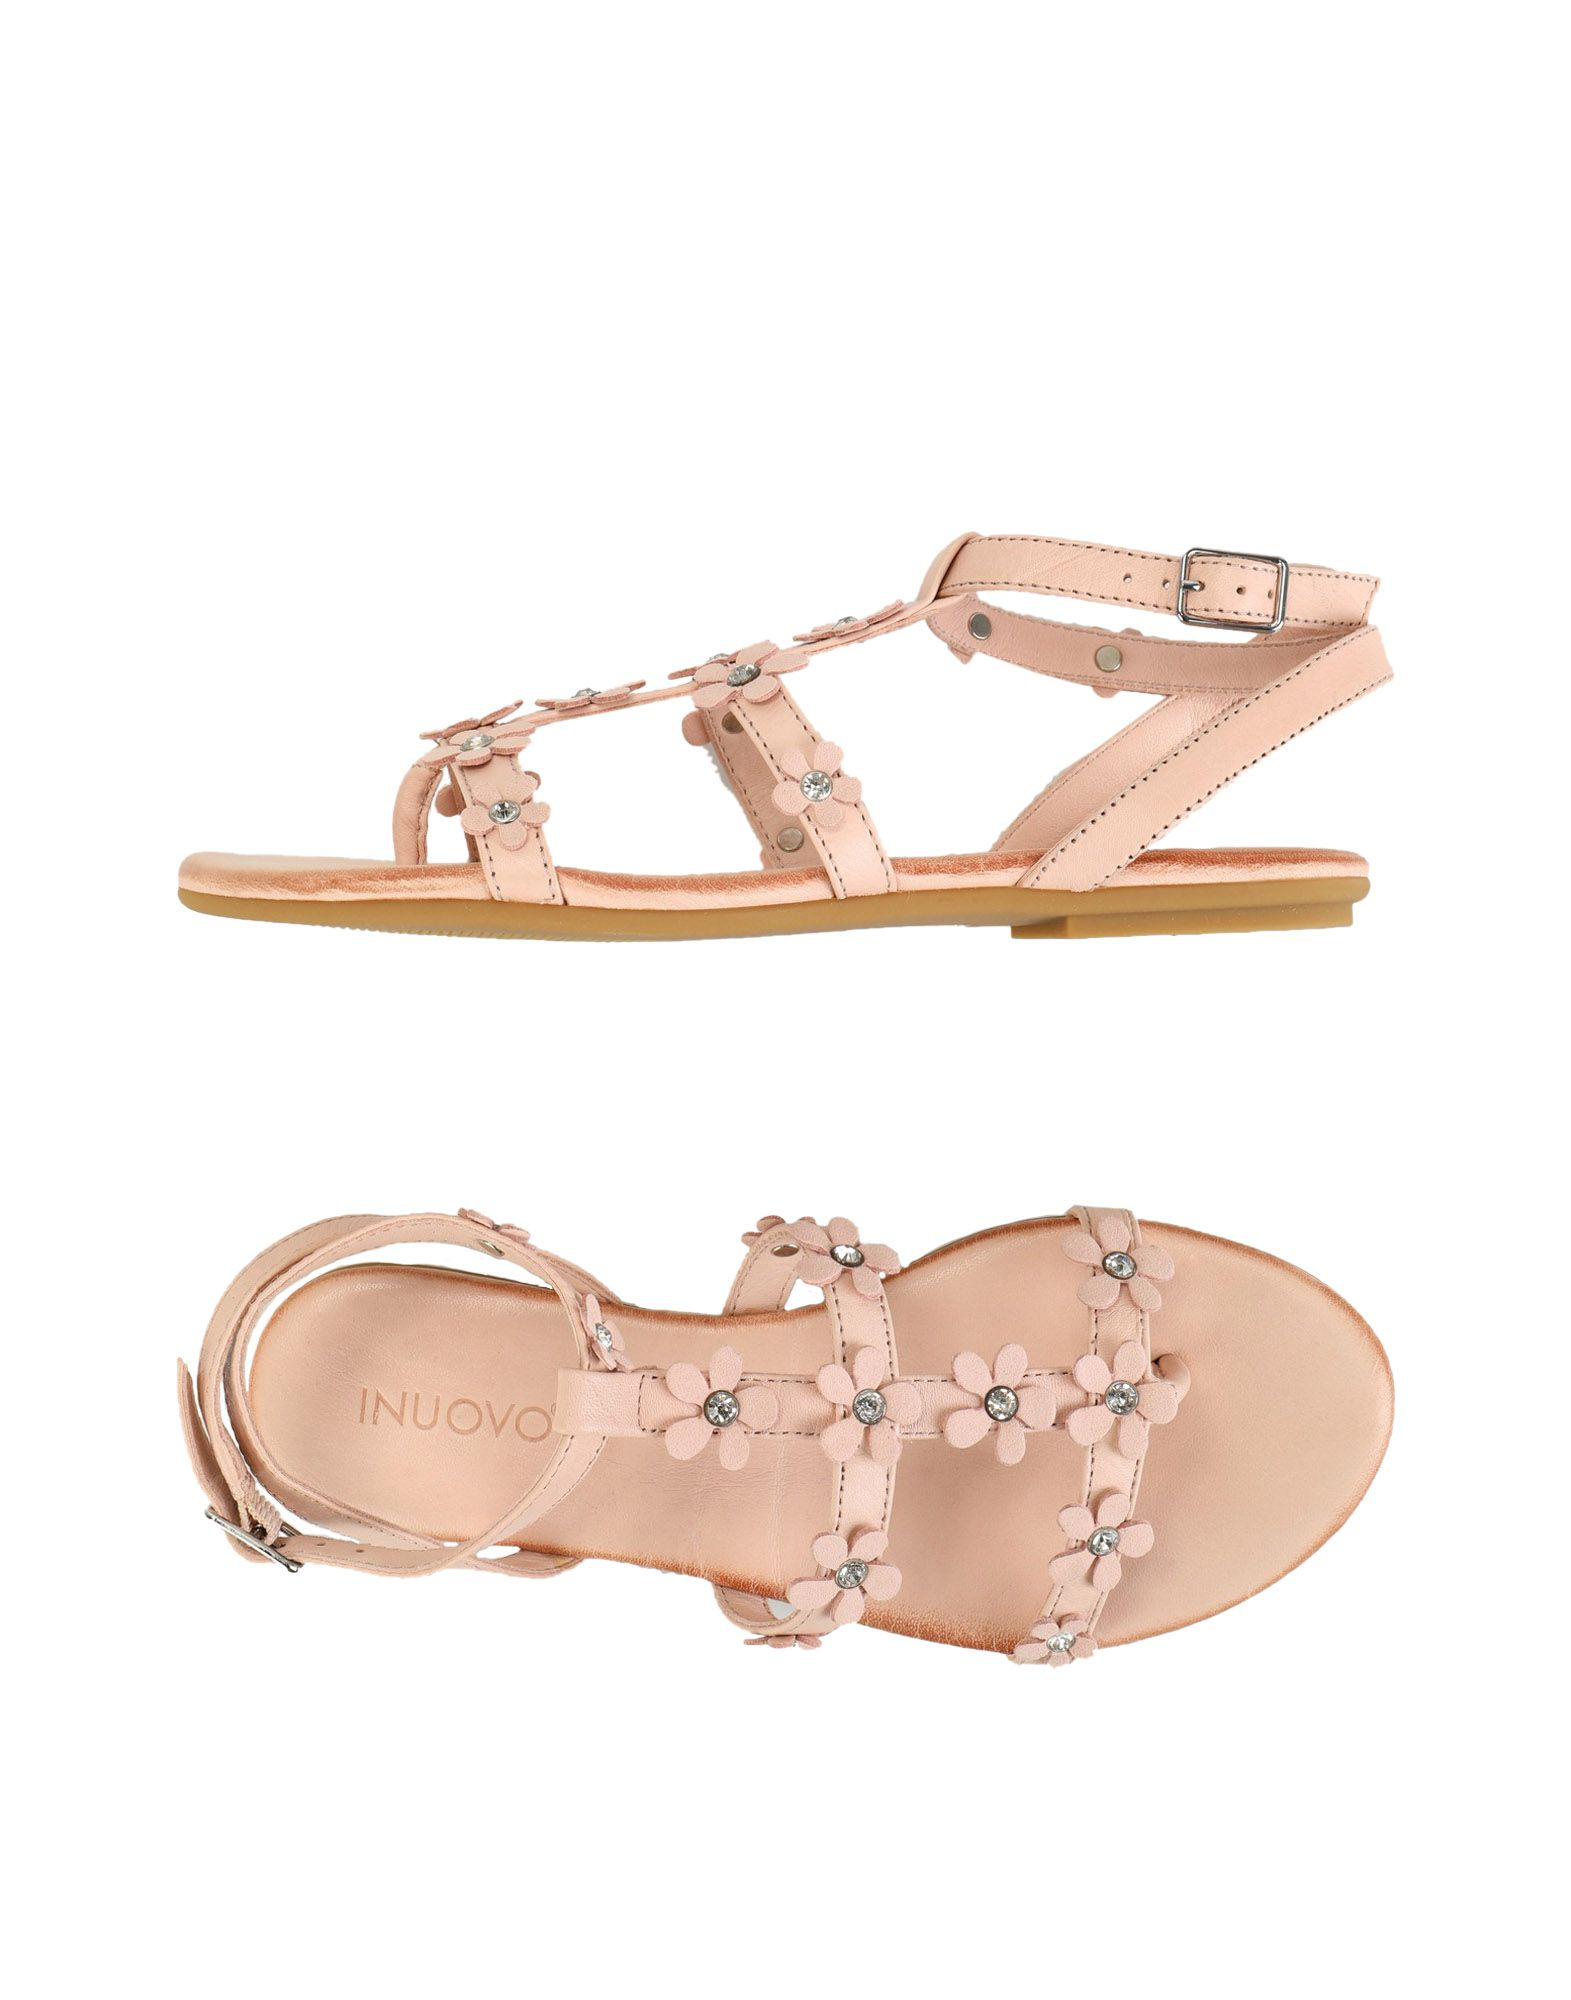 Sandales Inuovo Femme - Sandales Inuovo sur